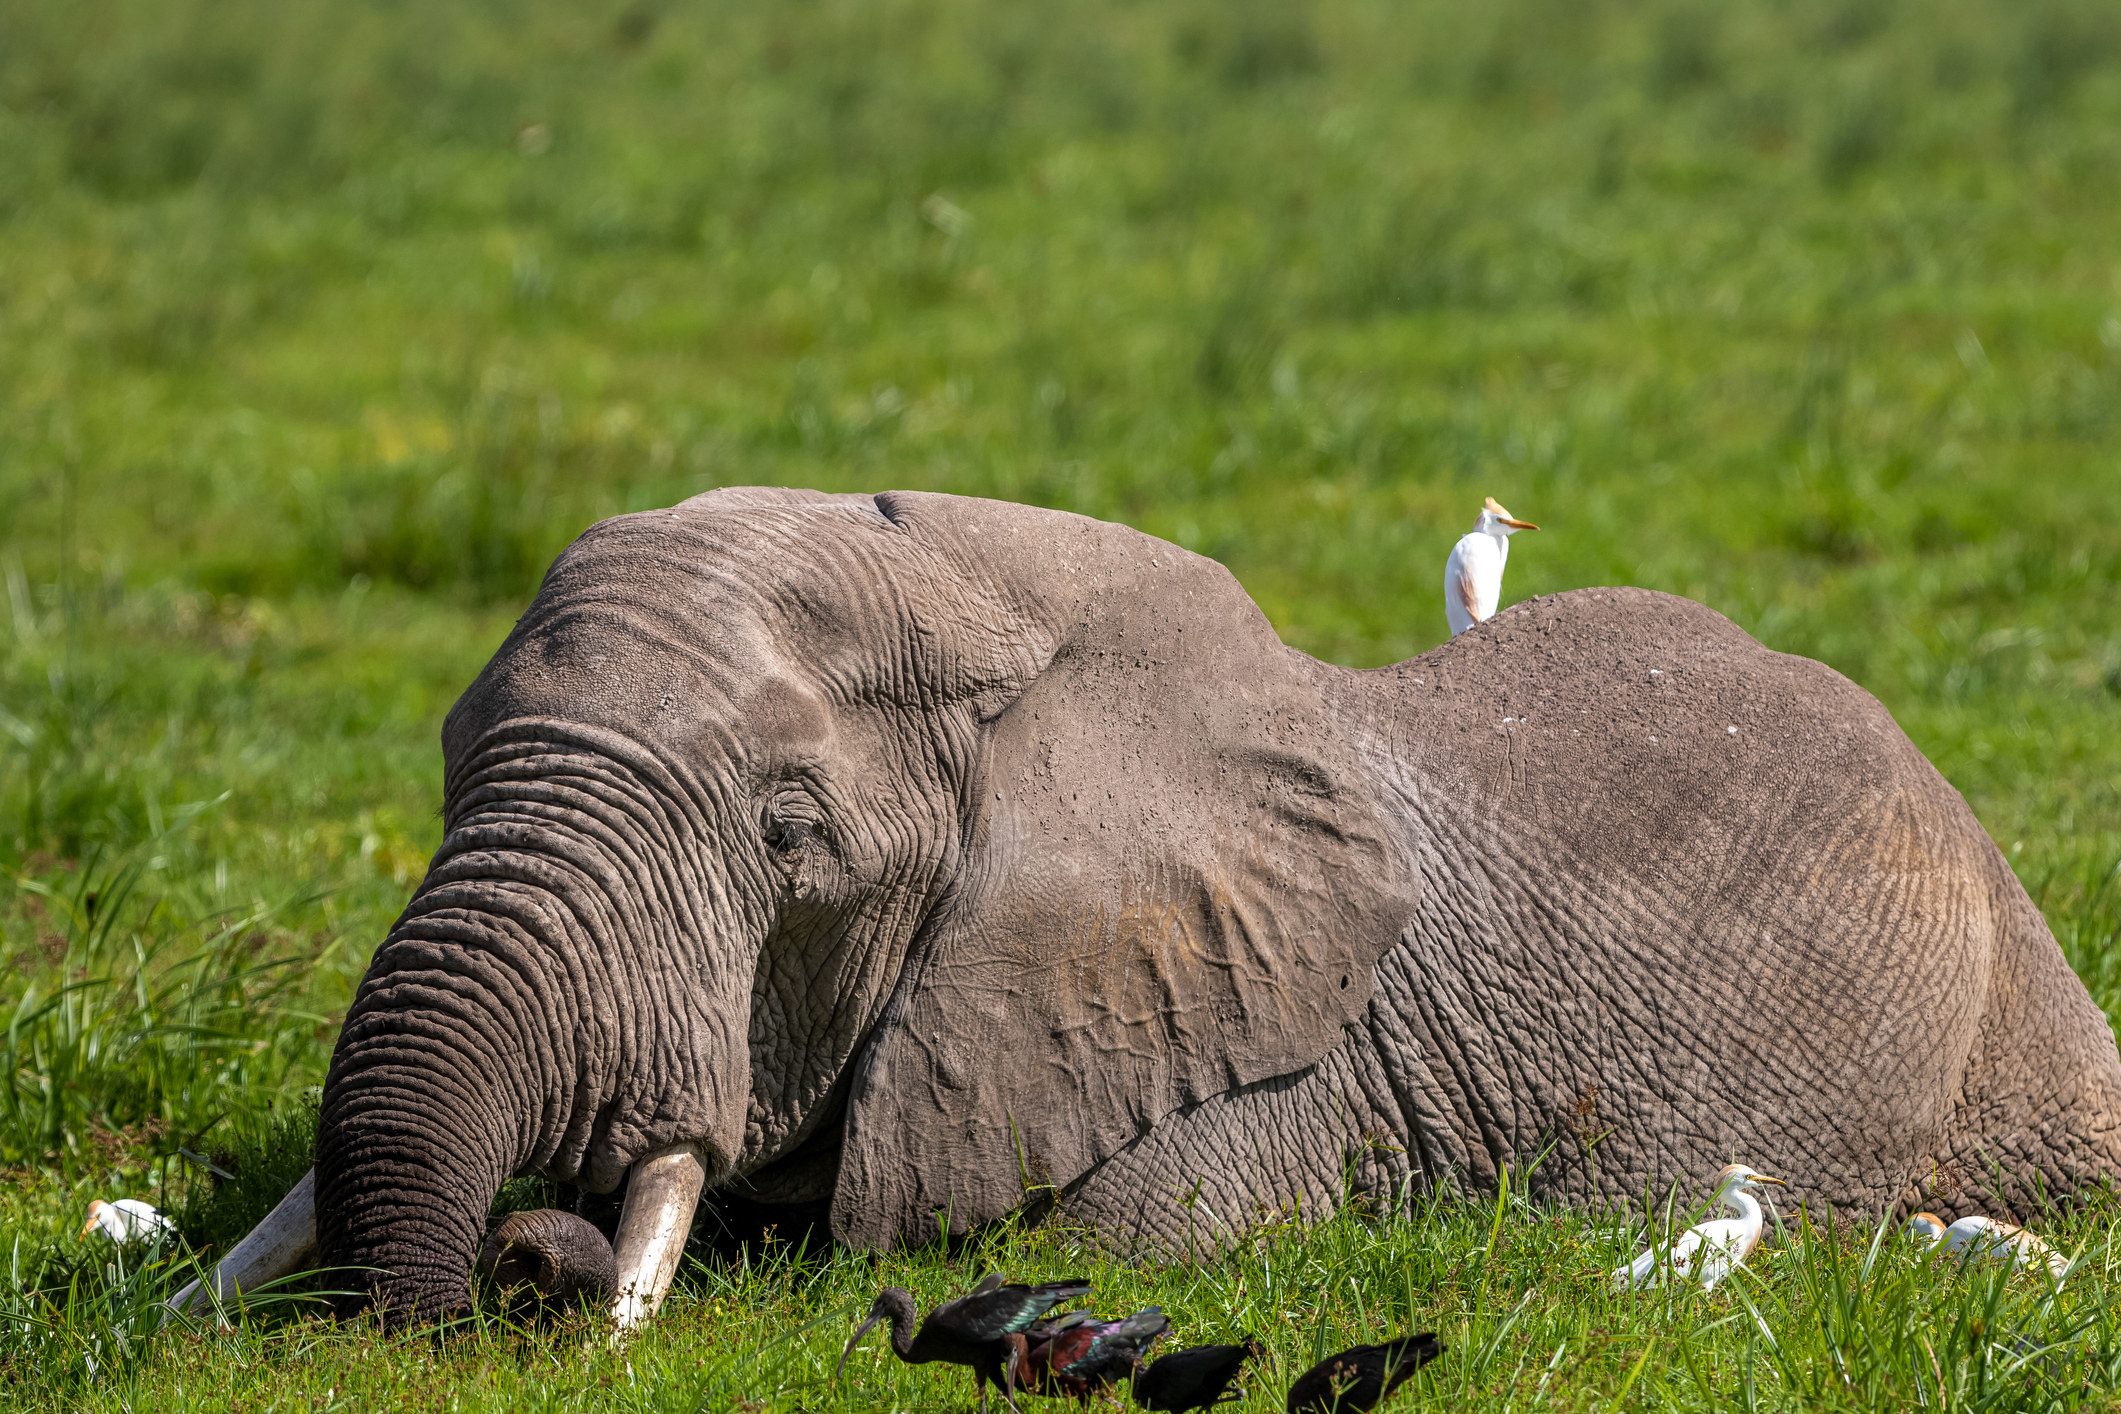 An elephant lying down in the grass surrounded by birds